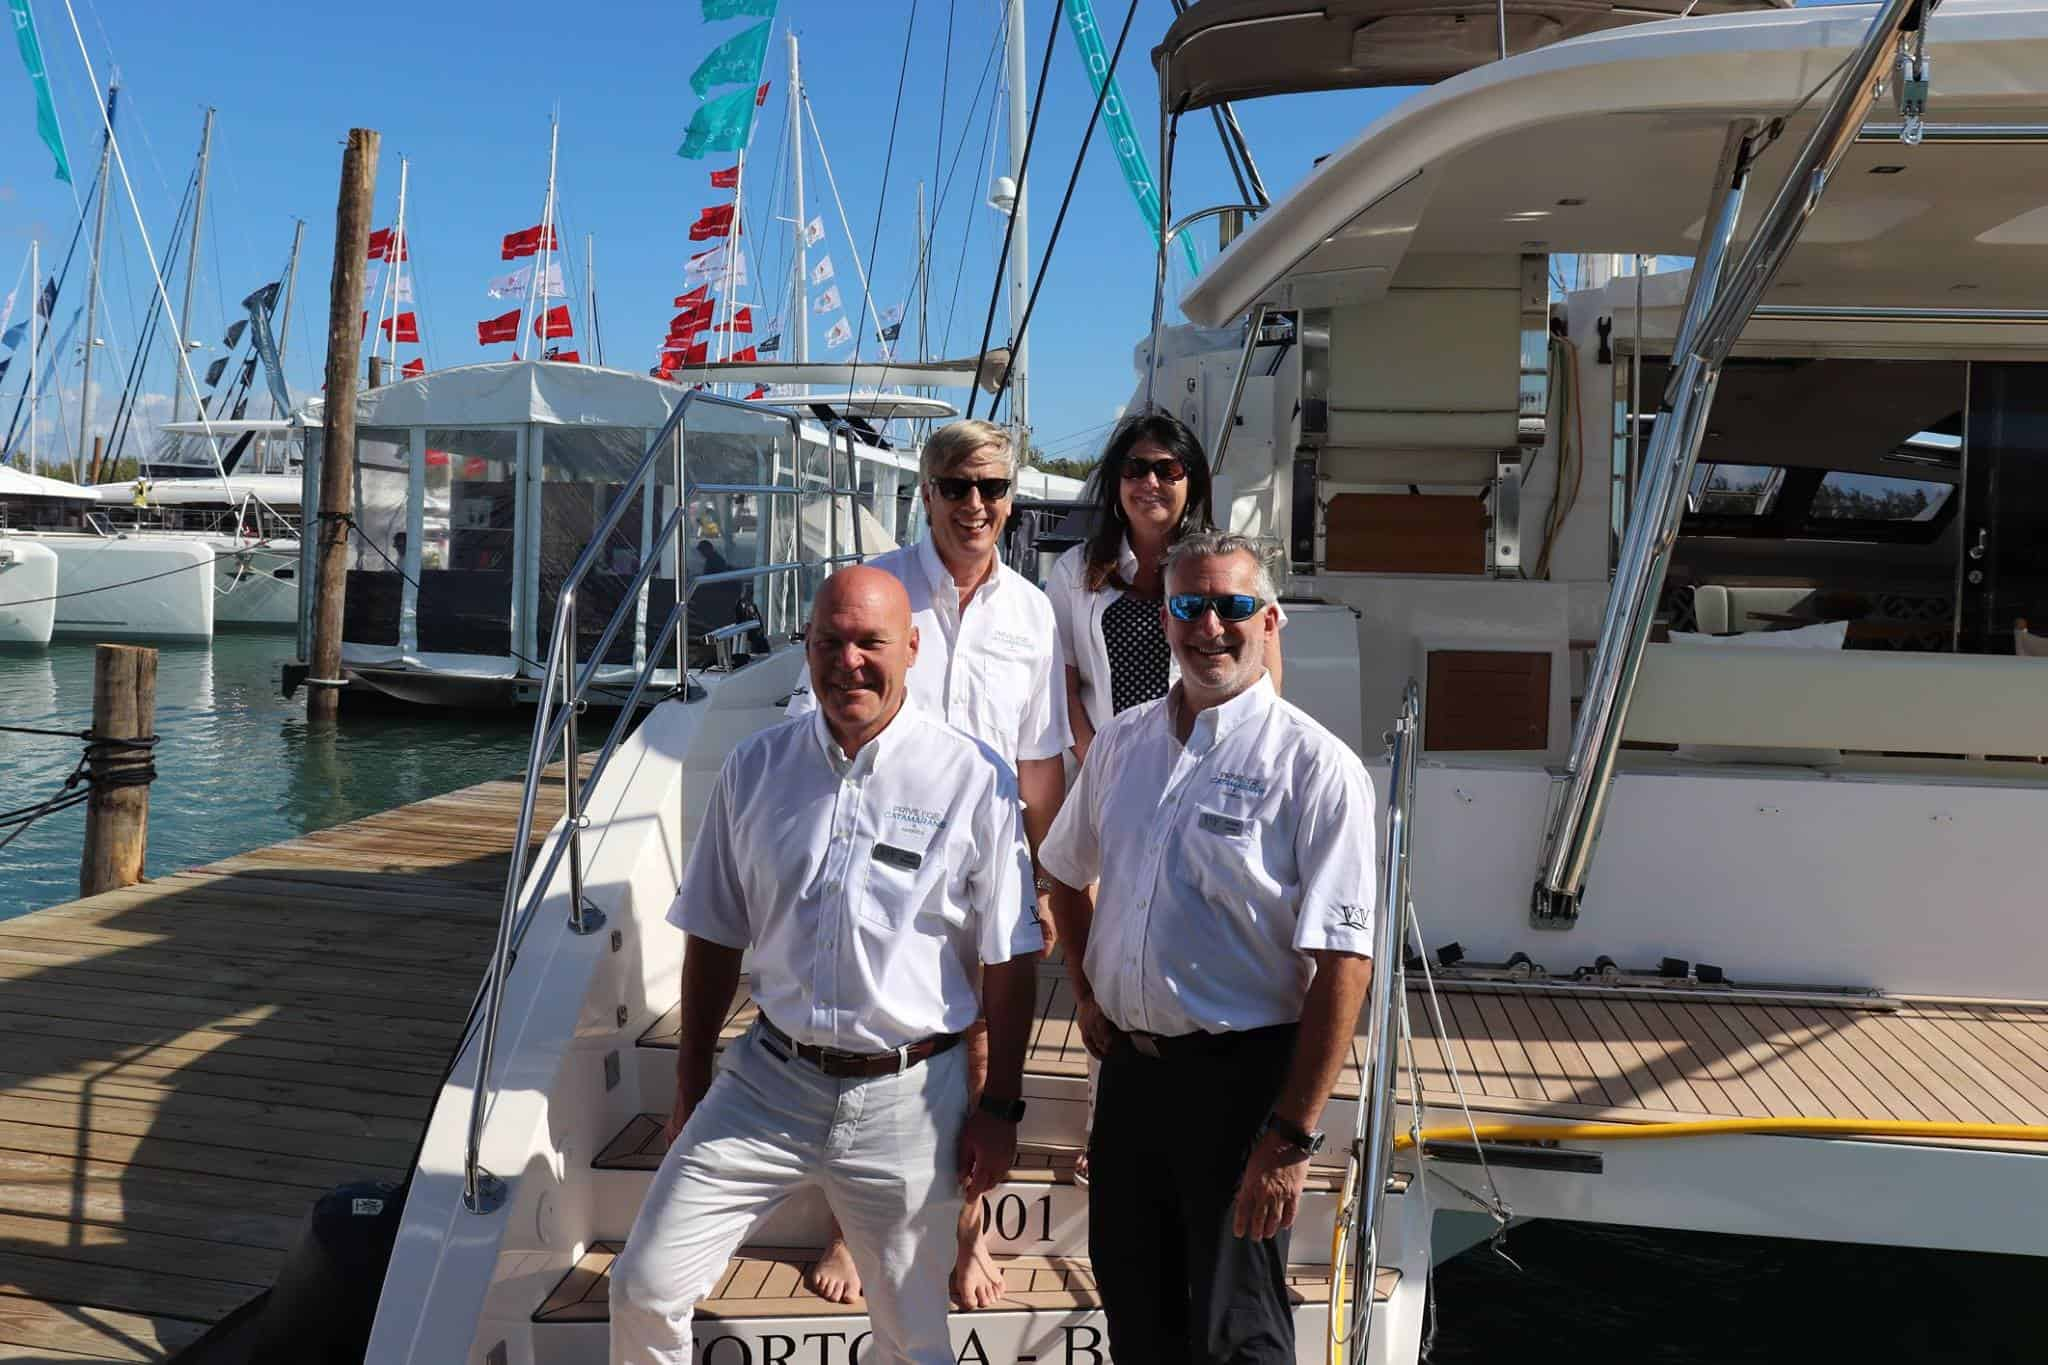 Crew from Privilege Catamarans America at the Miami Boat Show